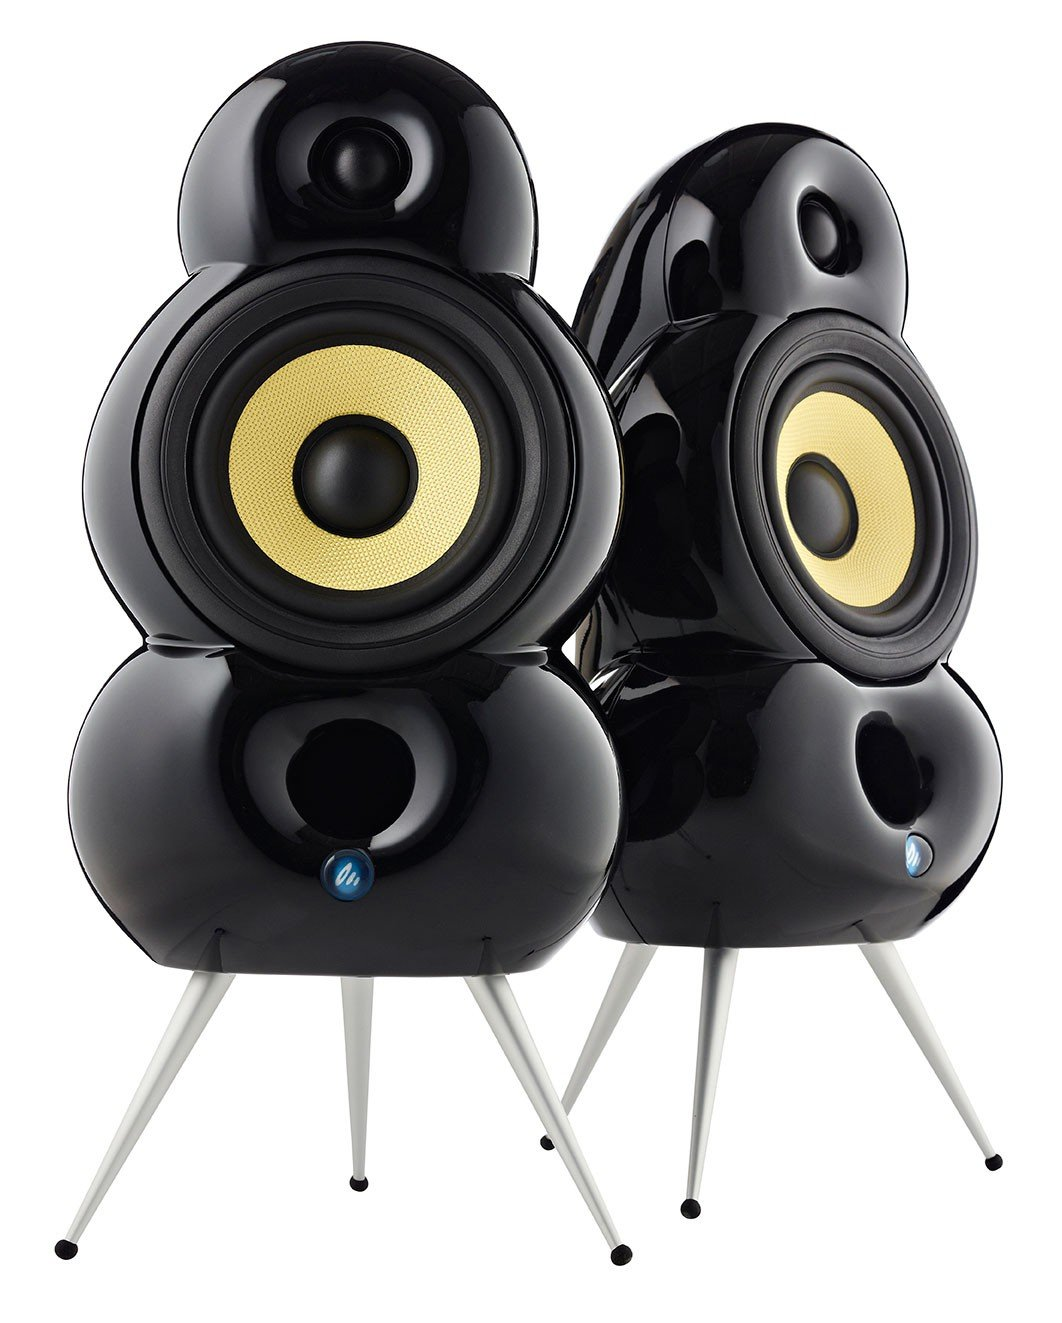 Podspeakers MiniPod Black Speakers for Stereo and Surround (Pair)